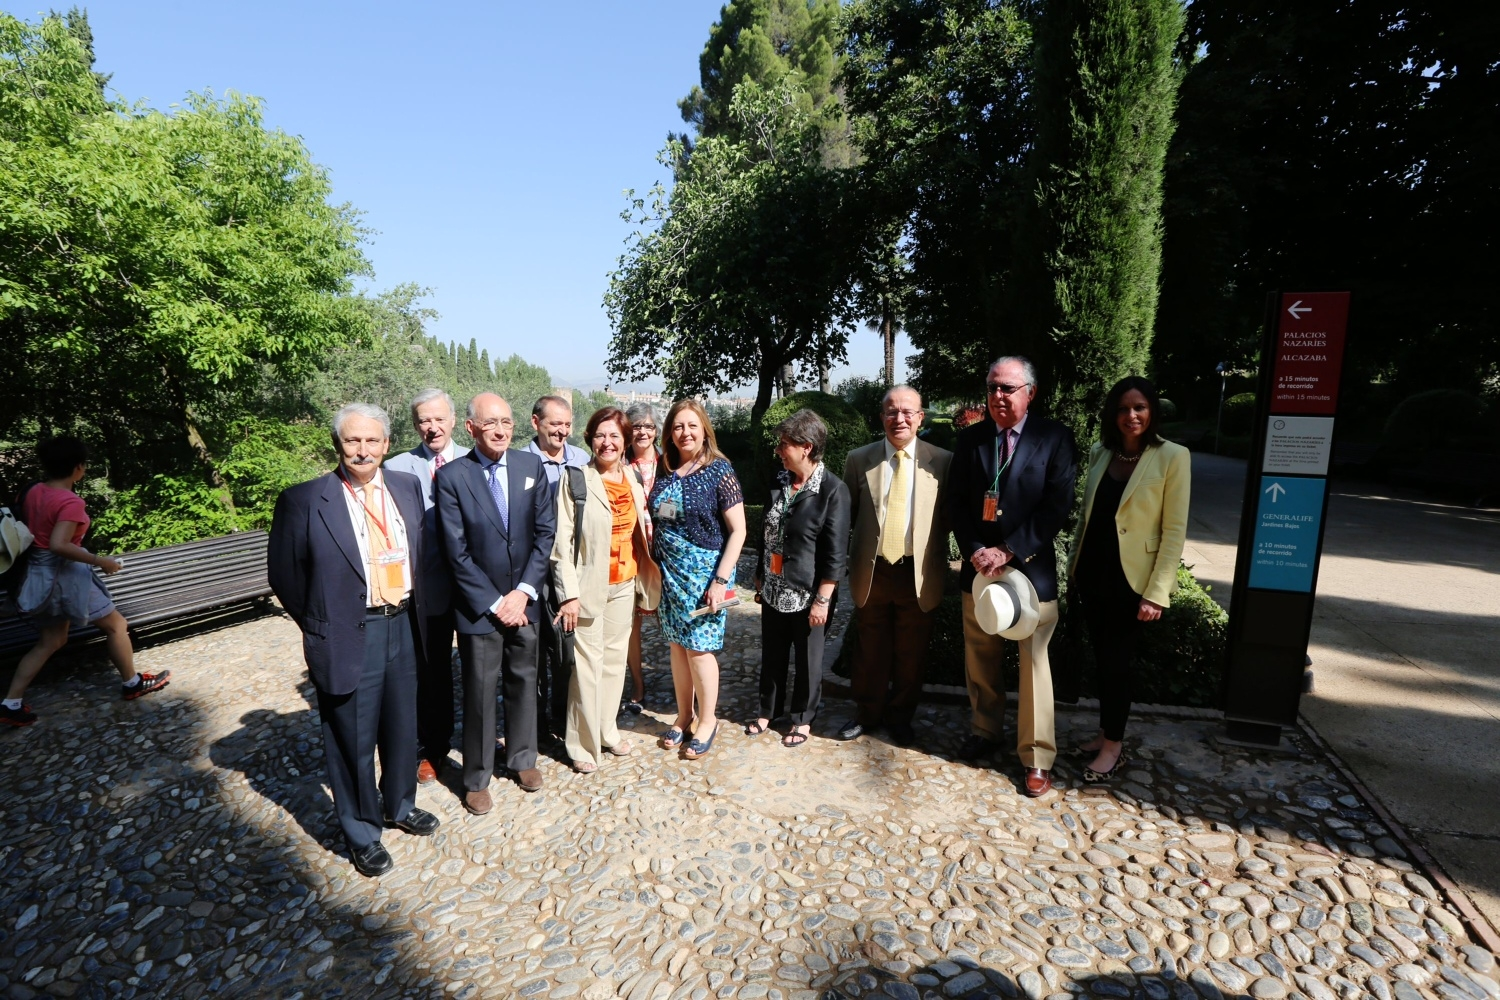 The Alhambra receives the Hispania Nostra Prize for its new signposting system.